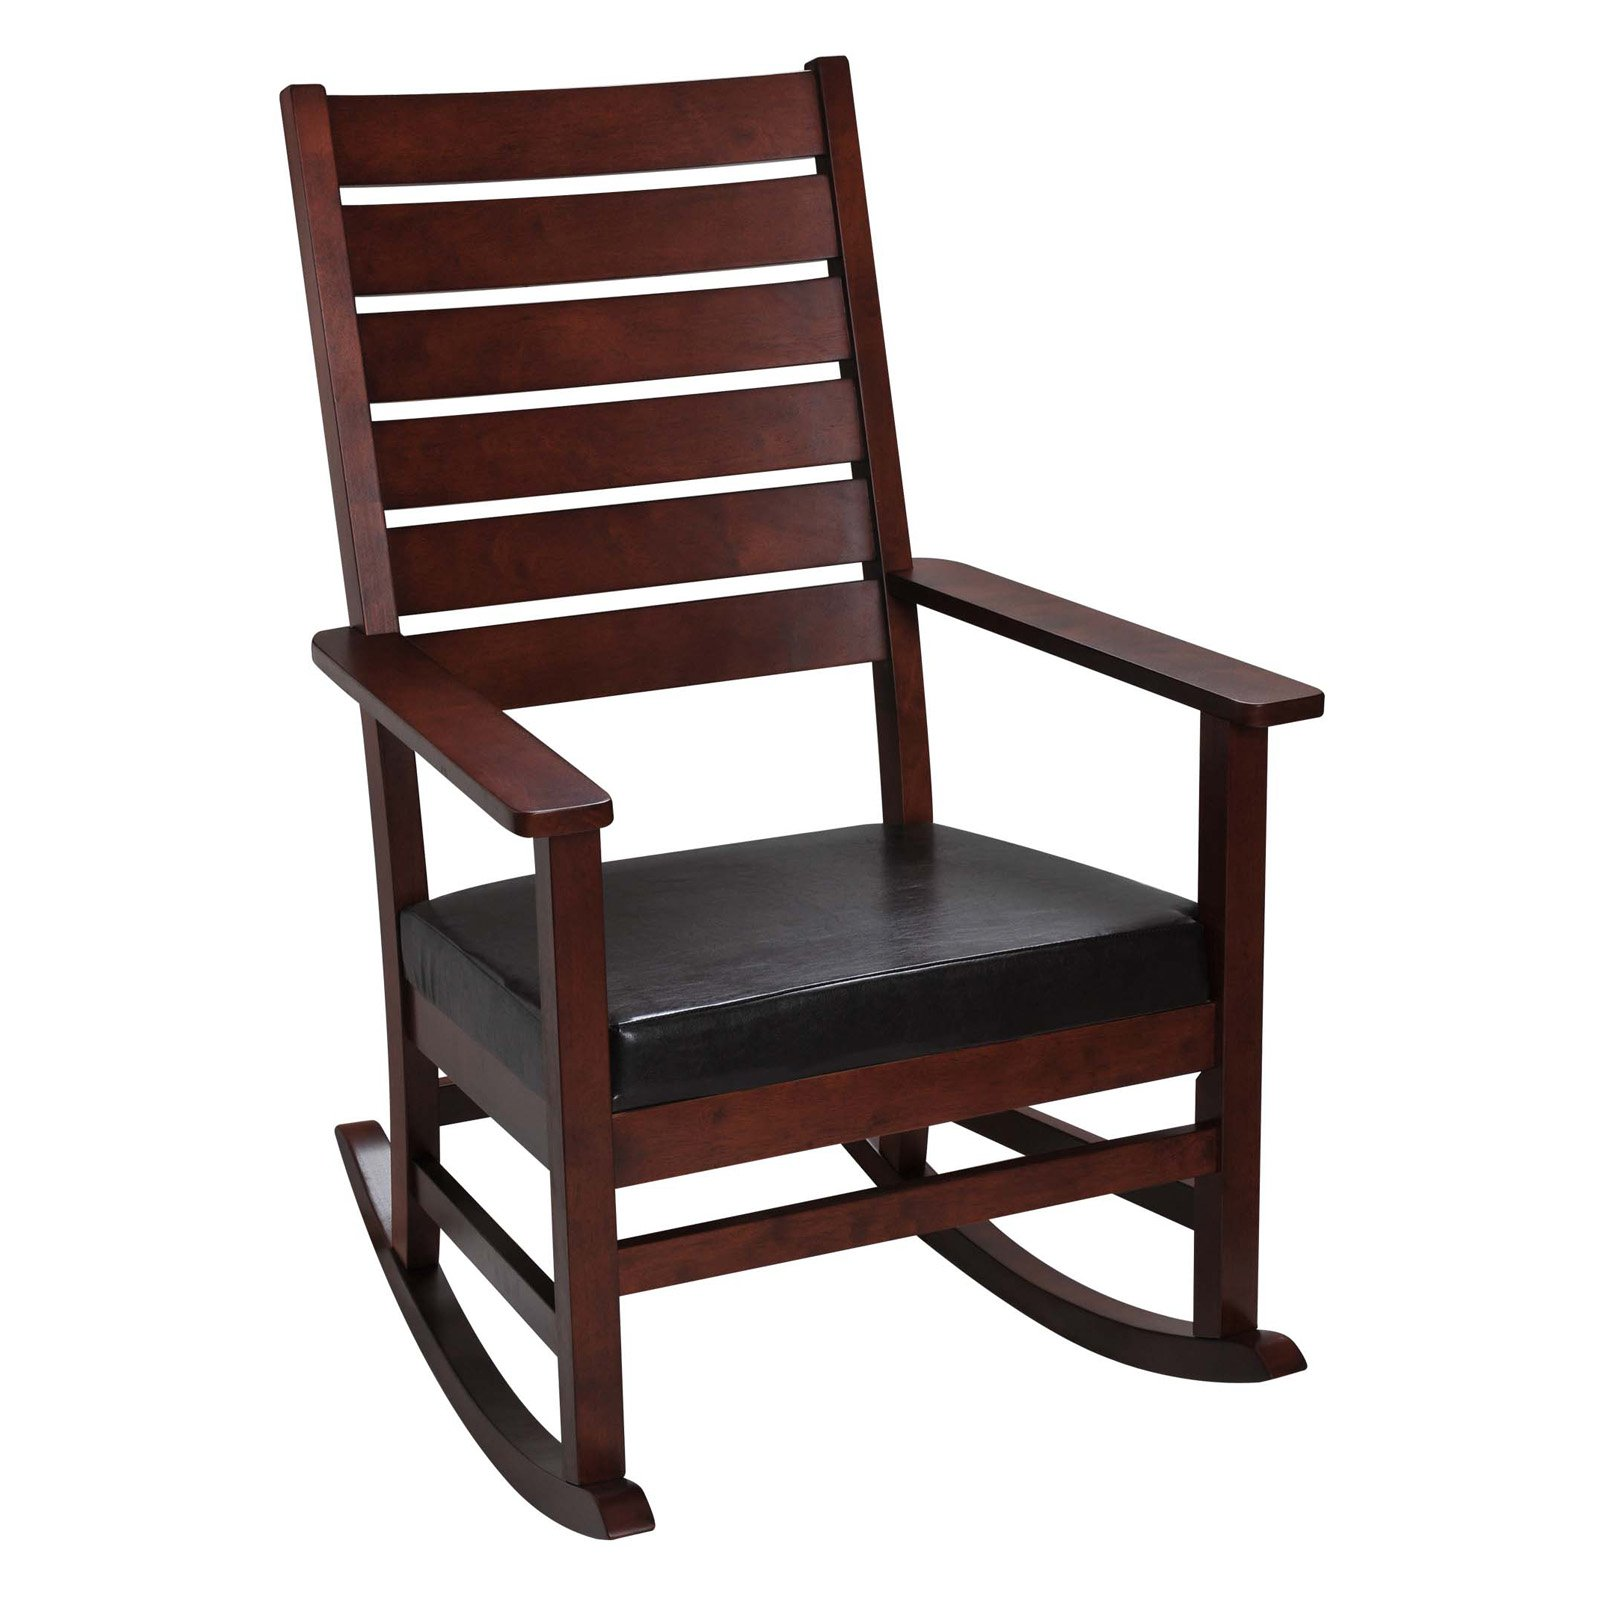 Gift Mark Mission Style Wooden Ladder Back Rocking Chair with Upholstered Seat